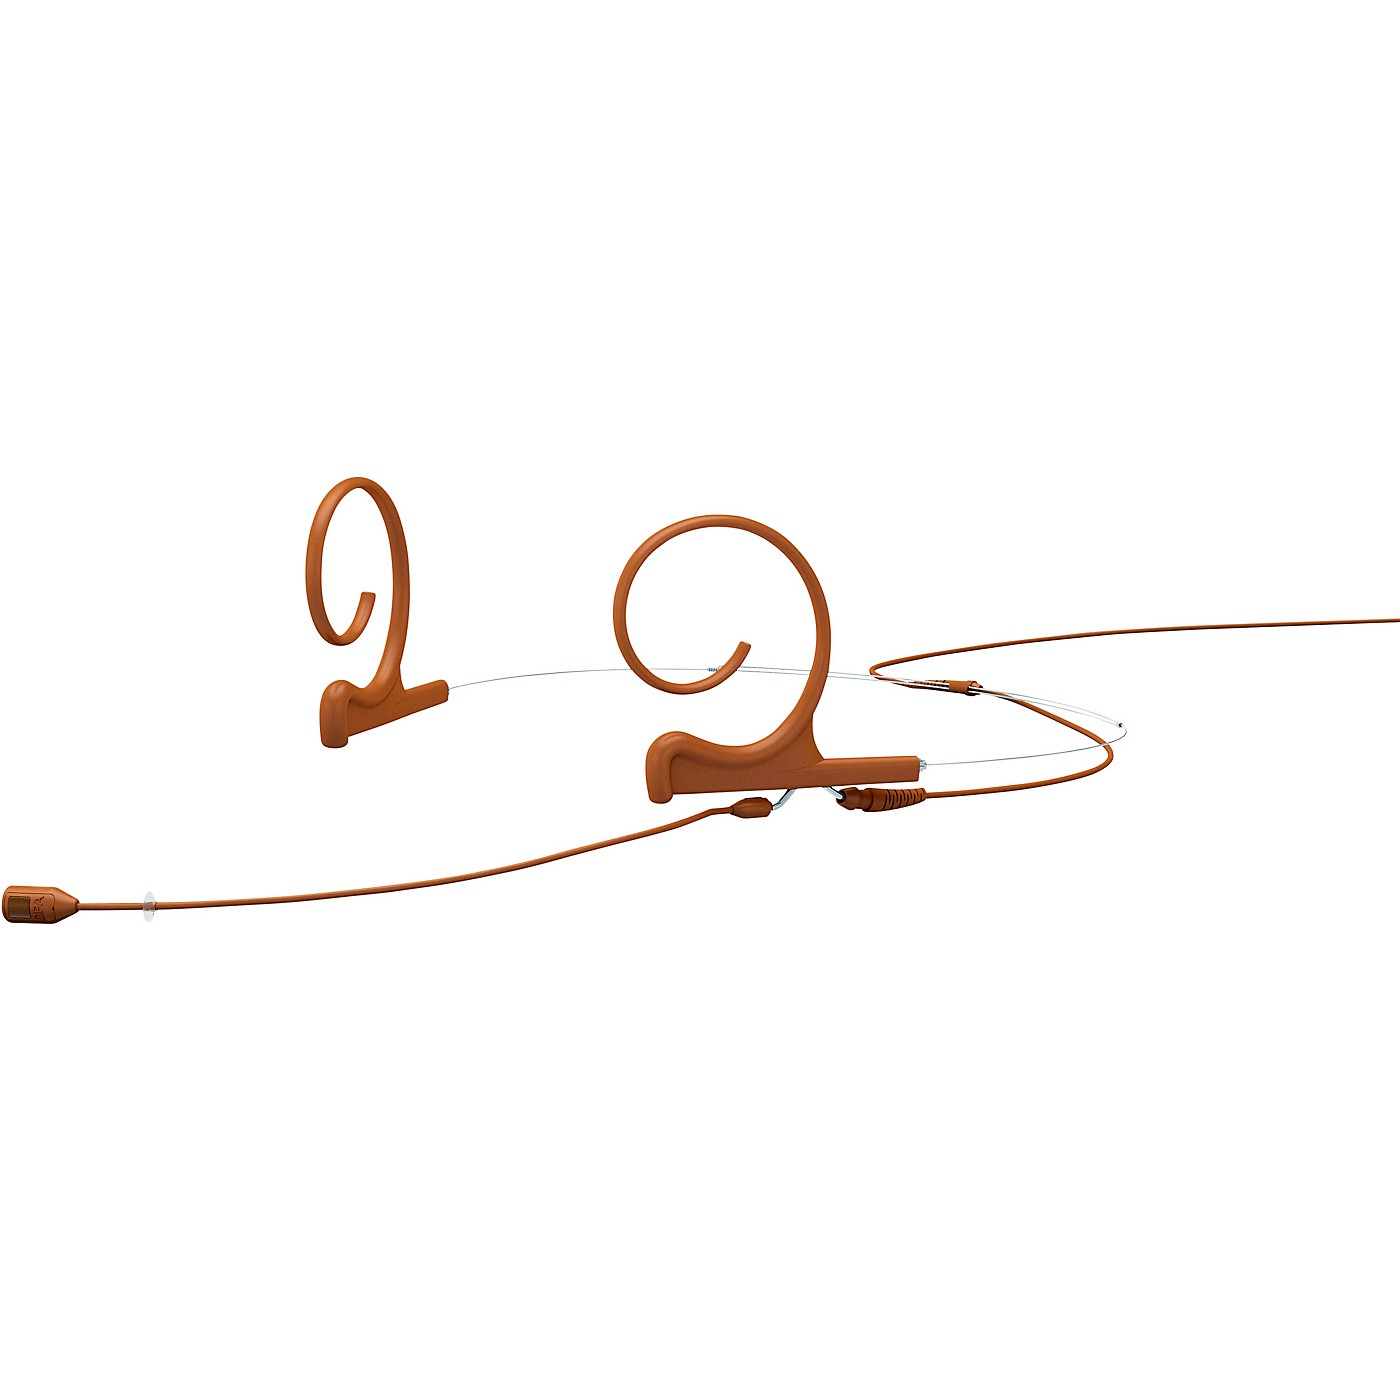 DPA Microphones d:fine FID88 Directional Headset Microphone—Dual Ear, 120mm Boom, Microdot Connector, Brown thumbnail